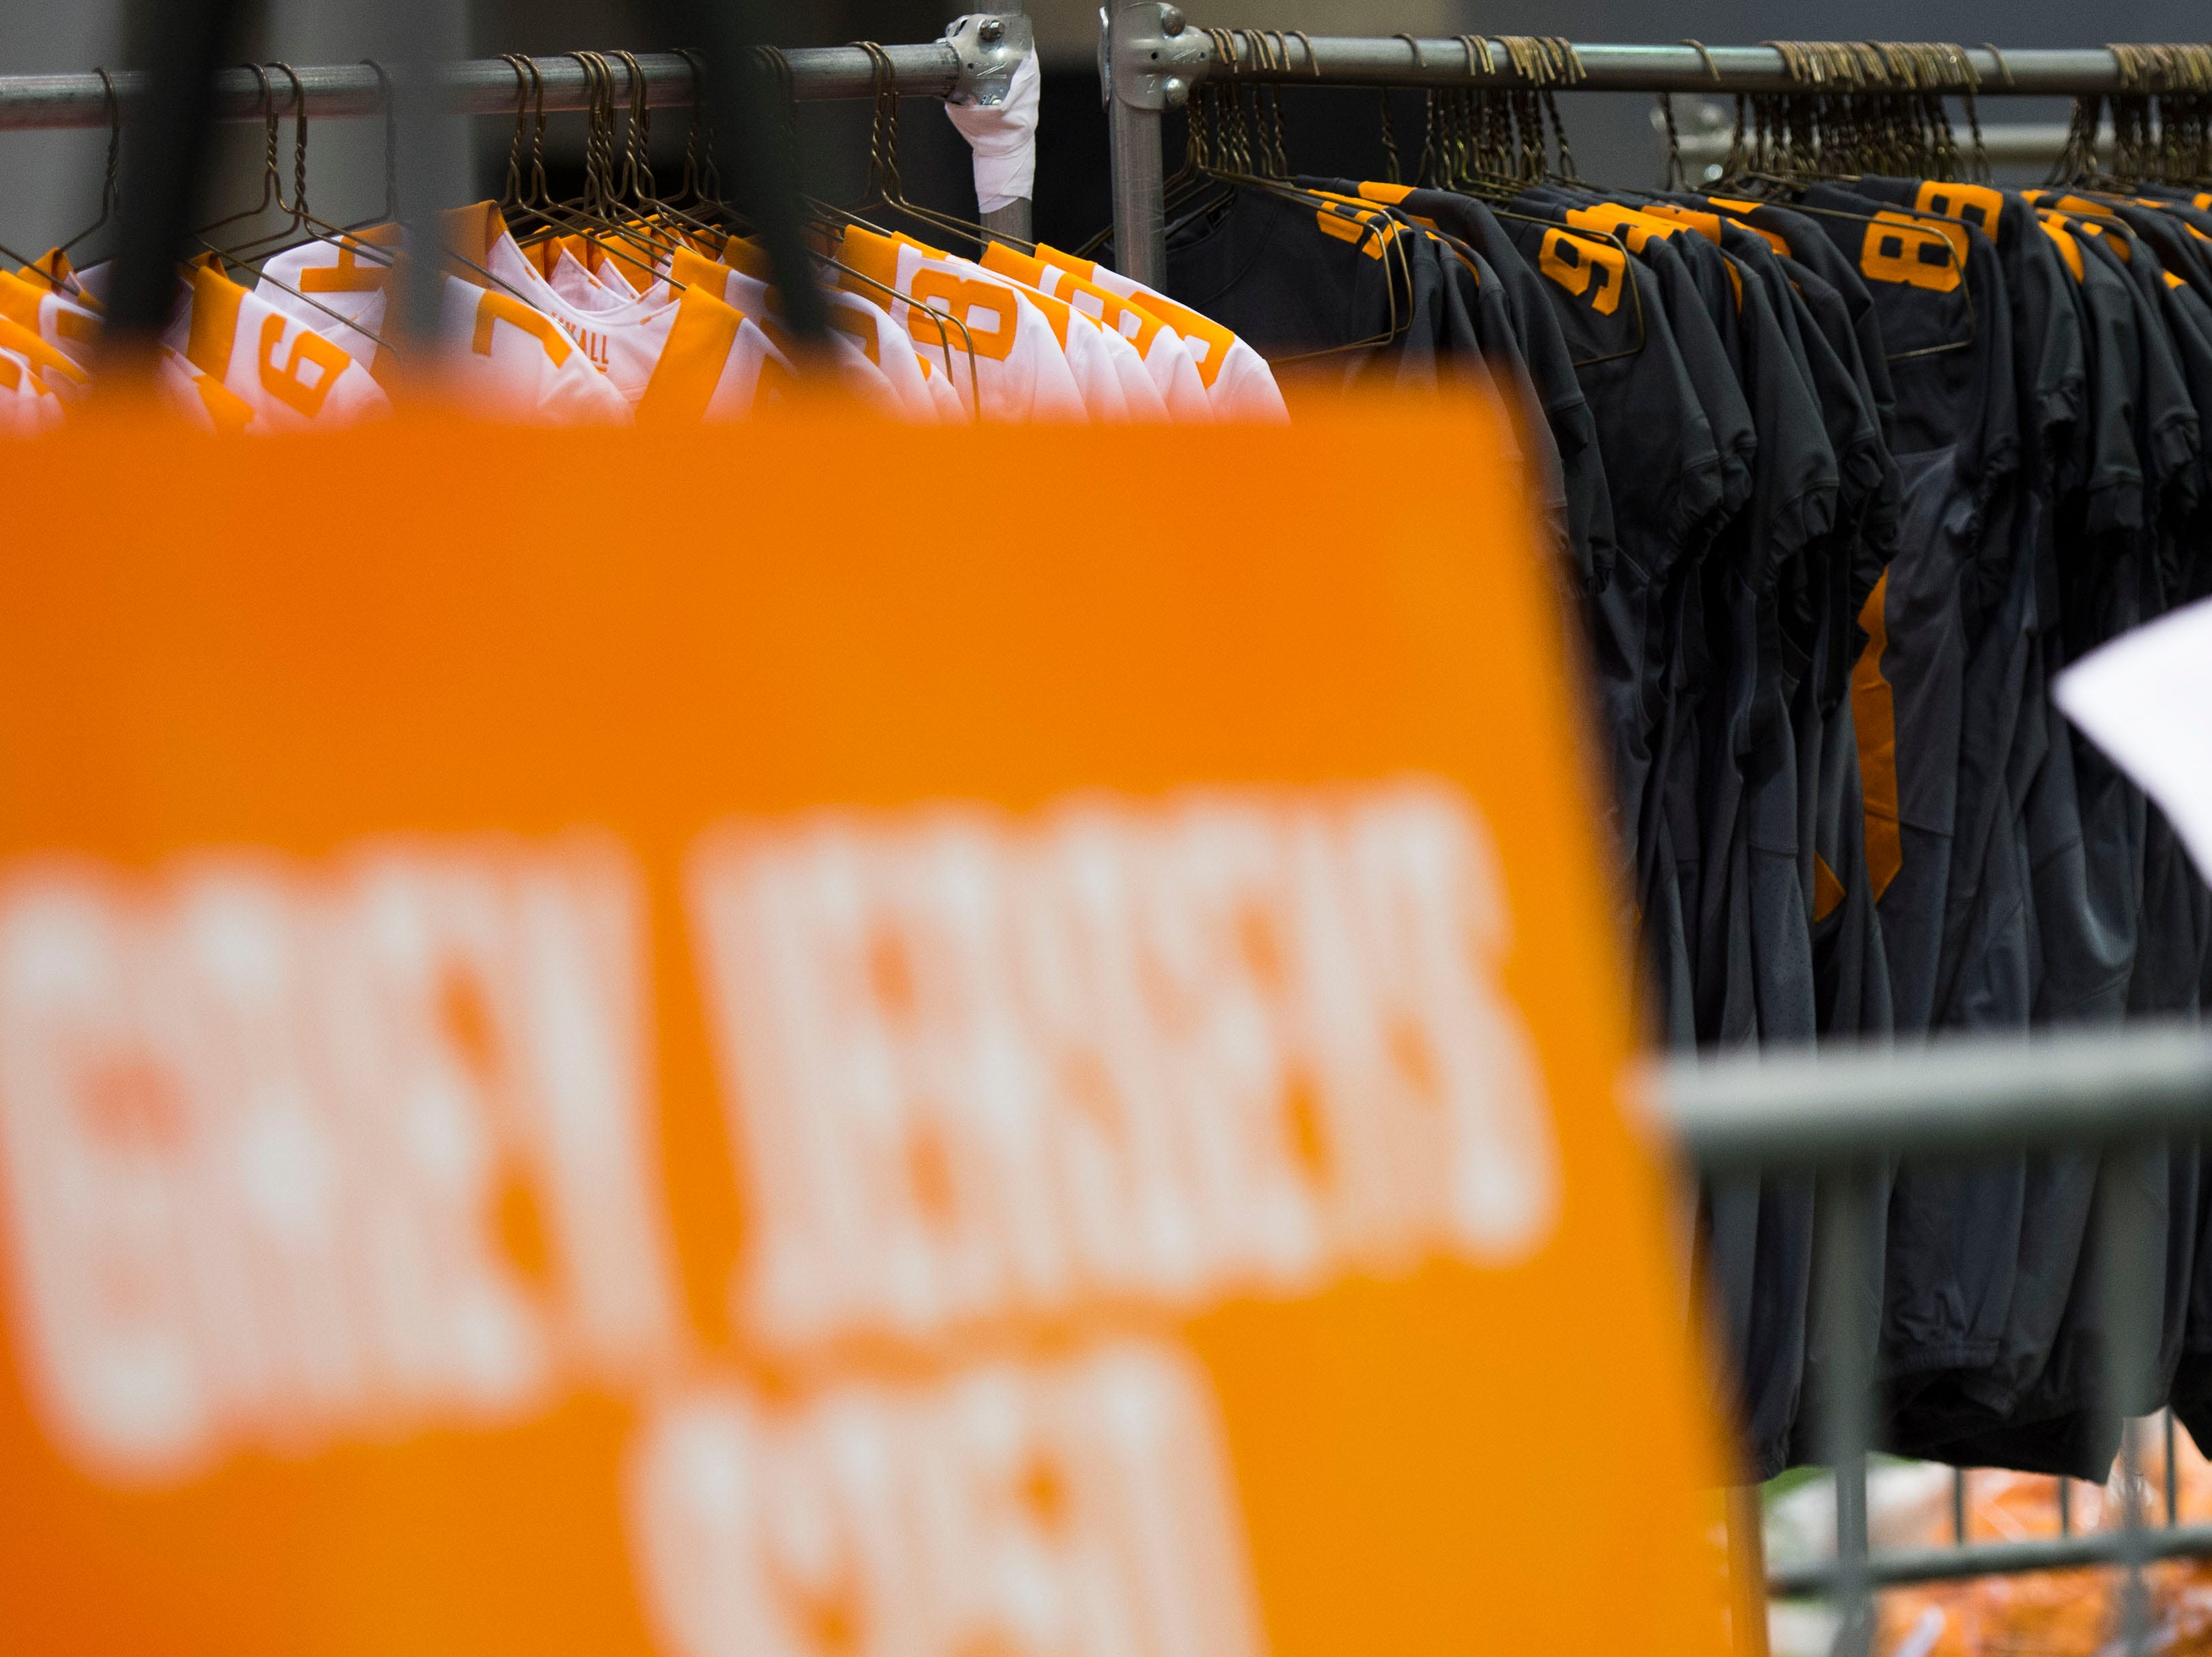 Jerseys hang for sale as people shop for athletic apparel on Tennessee football's indoor practice field during University of Tennessee Athletic Department's inventory sale Wednesday, Dec. 12, 2018. Helmets and jerseys were sold along side the discount gear for hundreds of dollars.